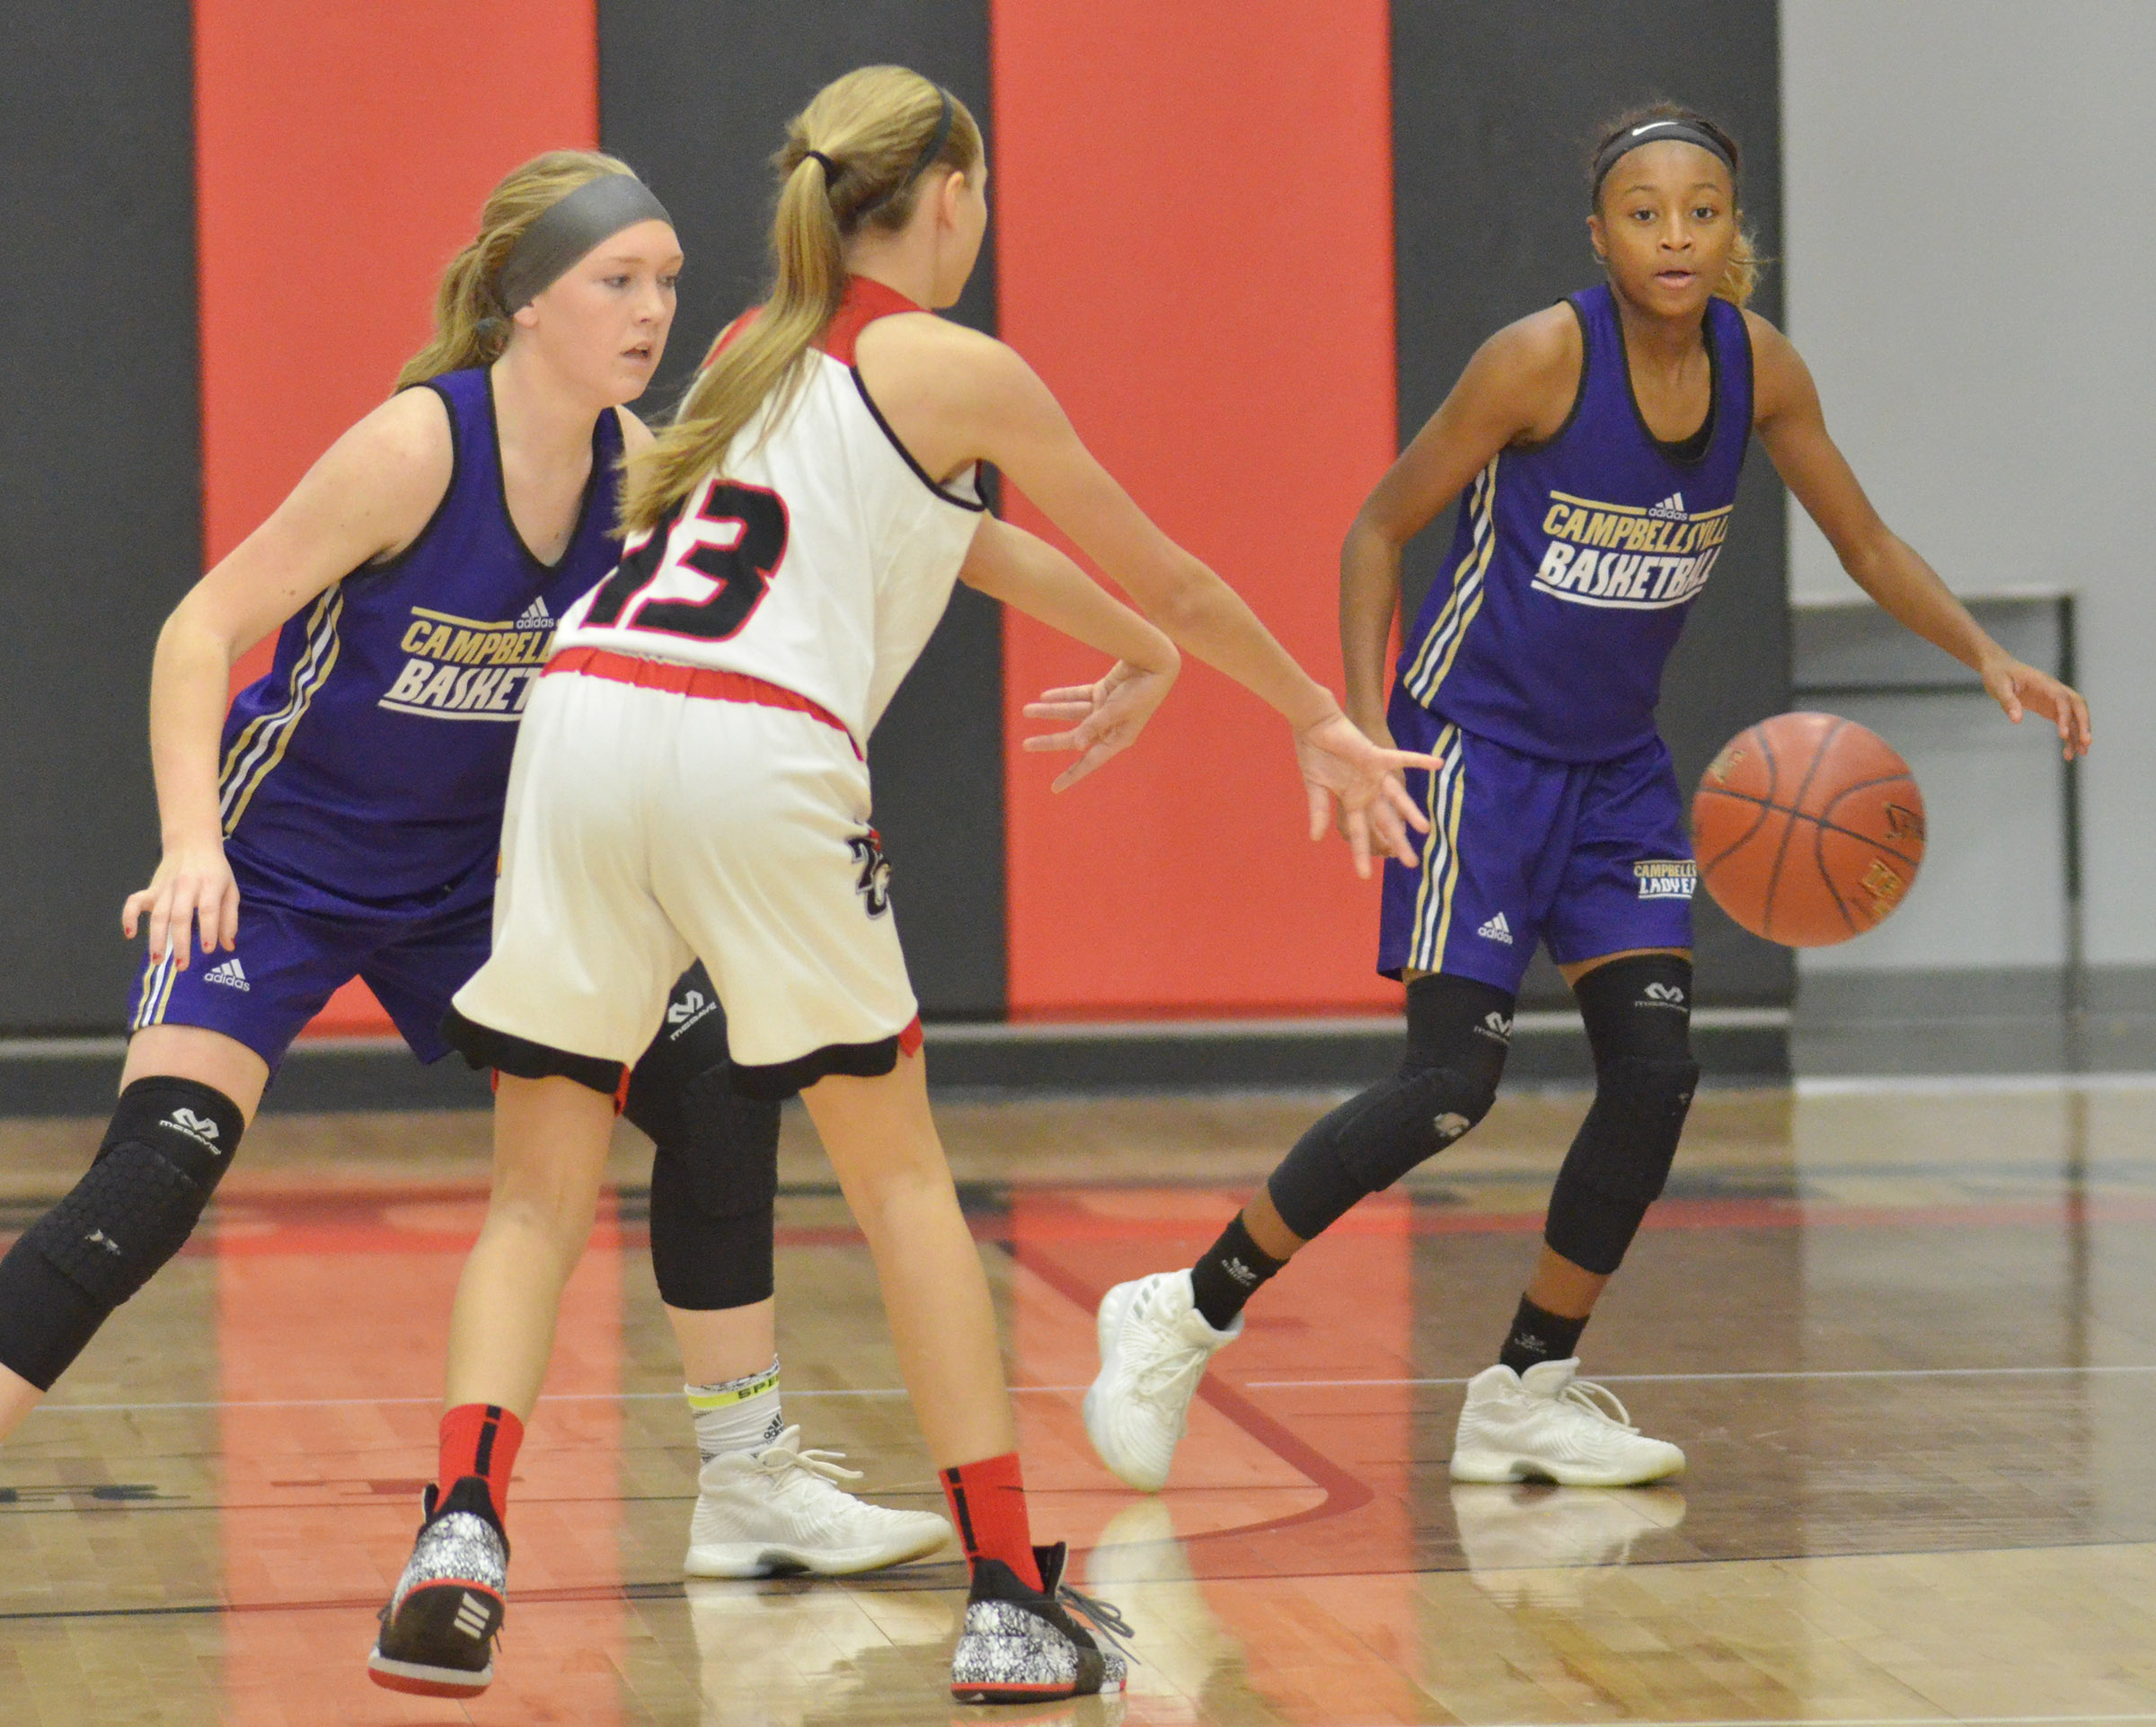 CHS freshman Catlyn Clausen, at left, and Campbellsville Middle School eighth-grader Bri Gowdy play defense.